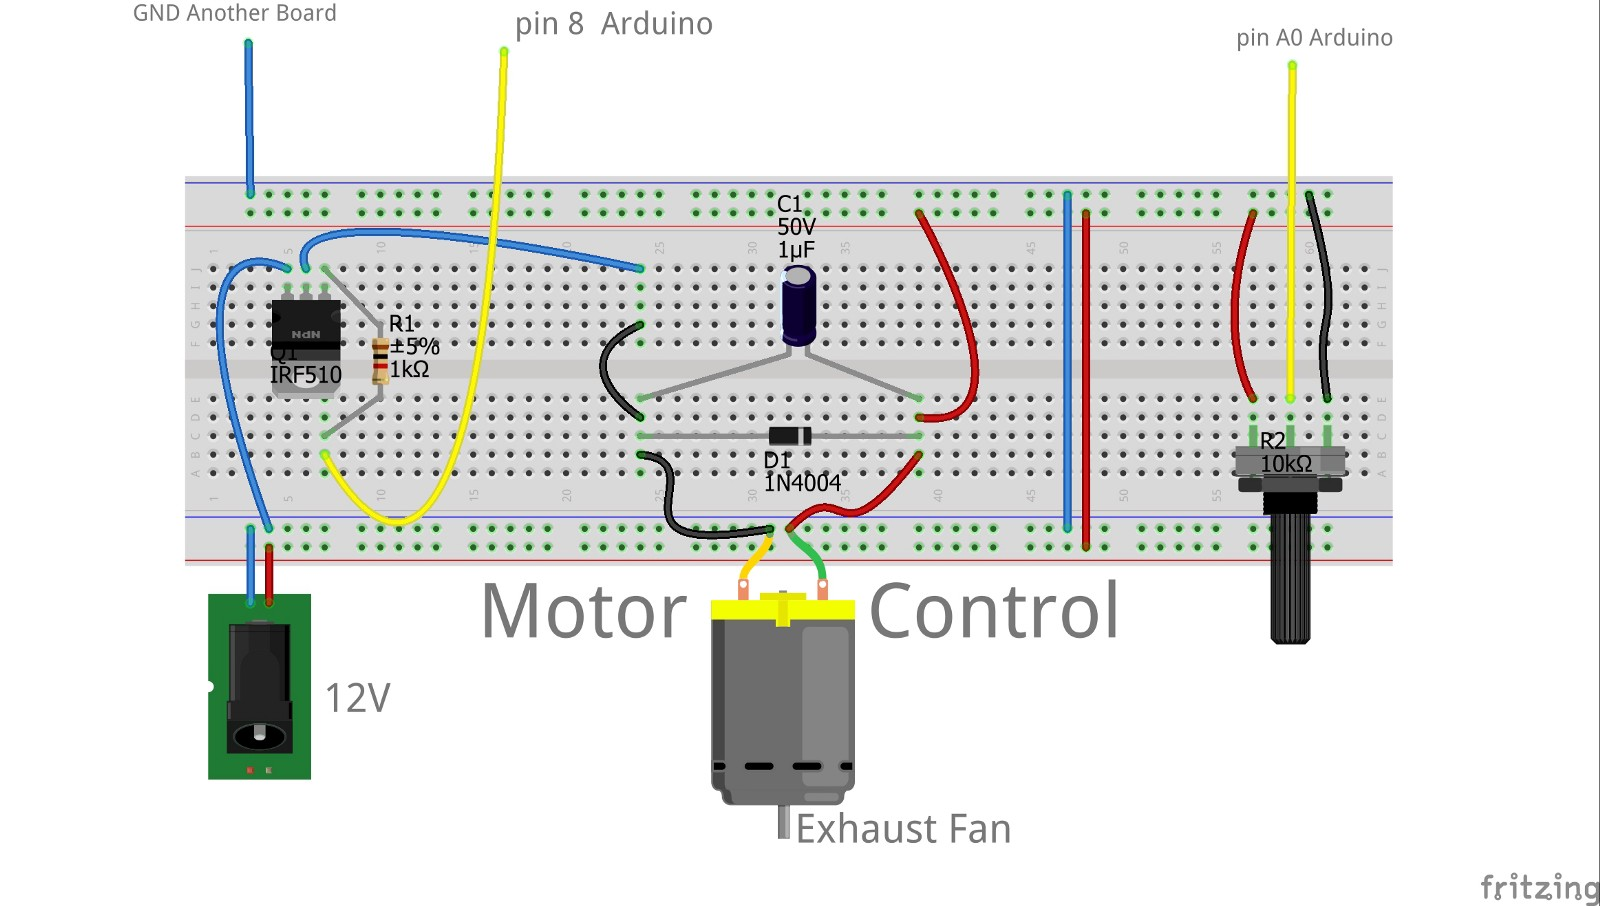 Pid Sample For Arduino Jungletronics Medium Temperature Detector Controller Circuit Electronic Projects We Capture The Fan Speed By Means Of An Reflective Ir Sensor With 330r And 100k Resistors